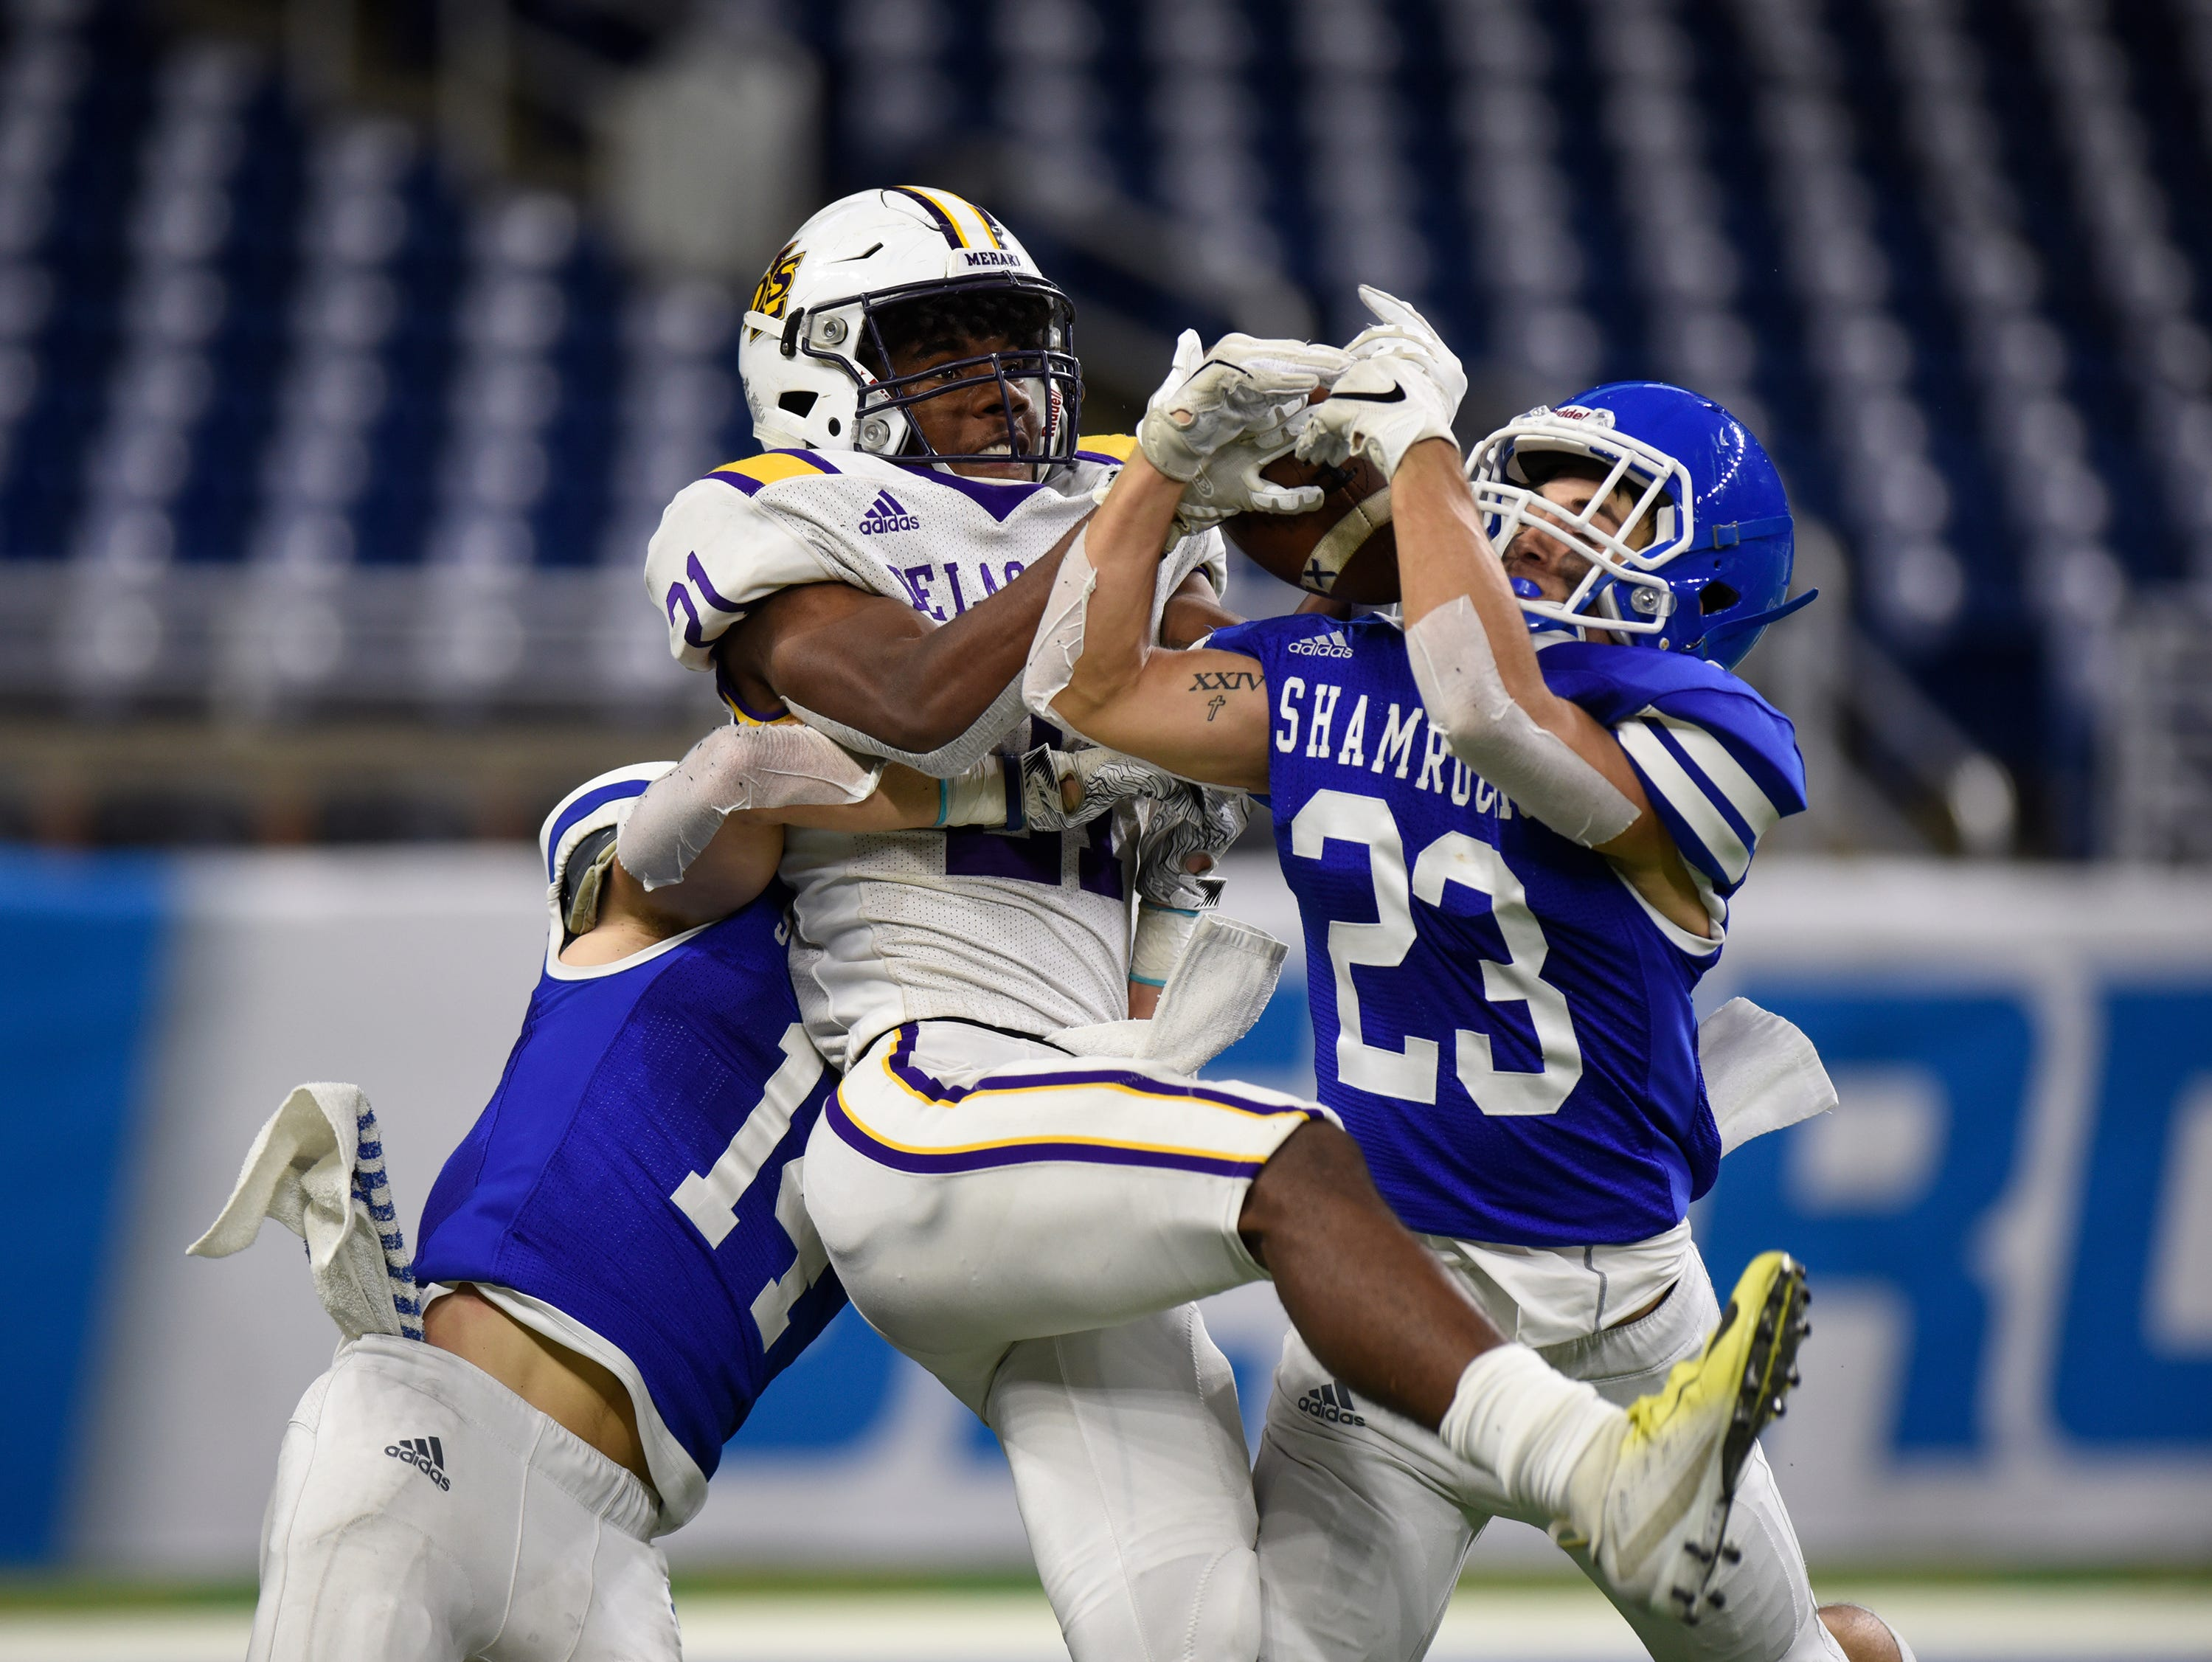 Warren De La Salle's Joshua DeBerry (21) was called for pass interference on this third quarter pass as Catholic Central receivers Detroit Catholic Ryan Birney and Parker Bohland (23) go for the ball during Catholic League Prep Bowl AB Division championship game at Ford Field Oct. 20, 2018.